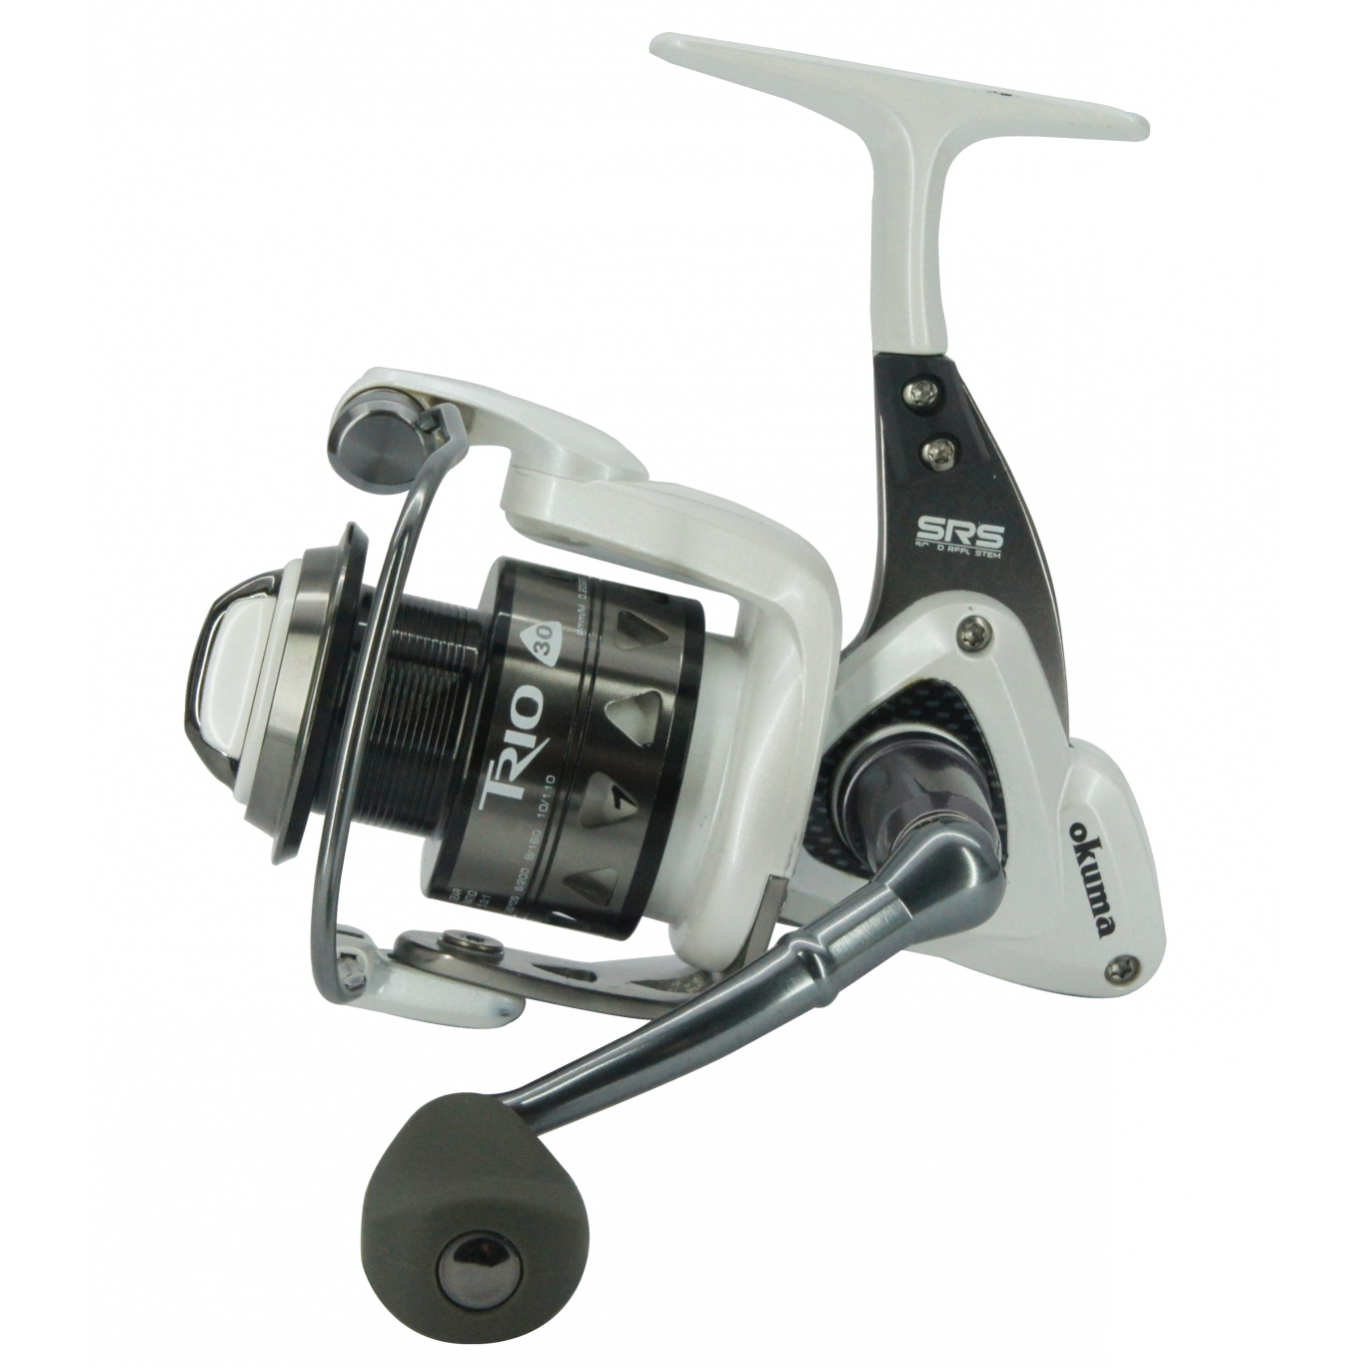 >If you are looking for a saltwater spinning reel then the Okuma Trio White TW-40 fits the bill, with 10 bearings, machine cut brass gears & aluminium spool